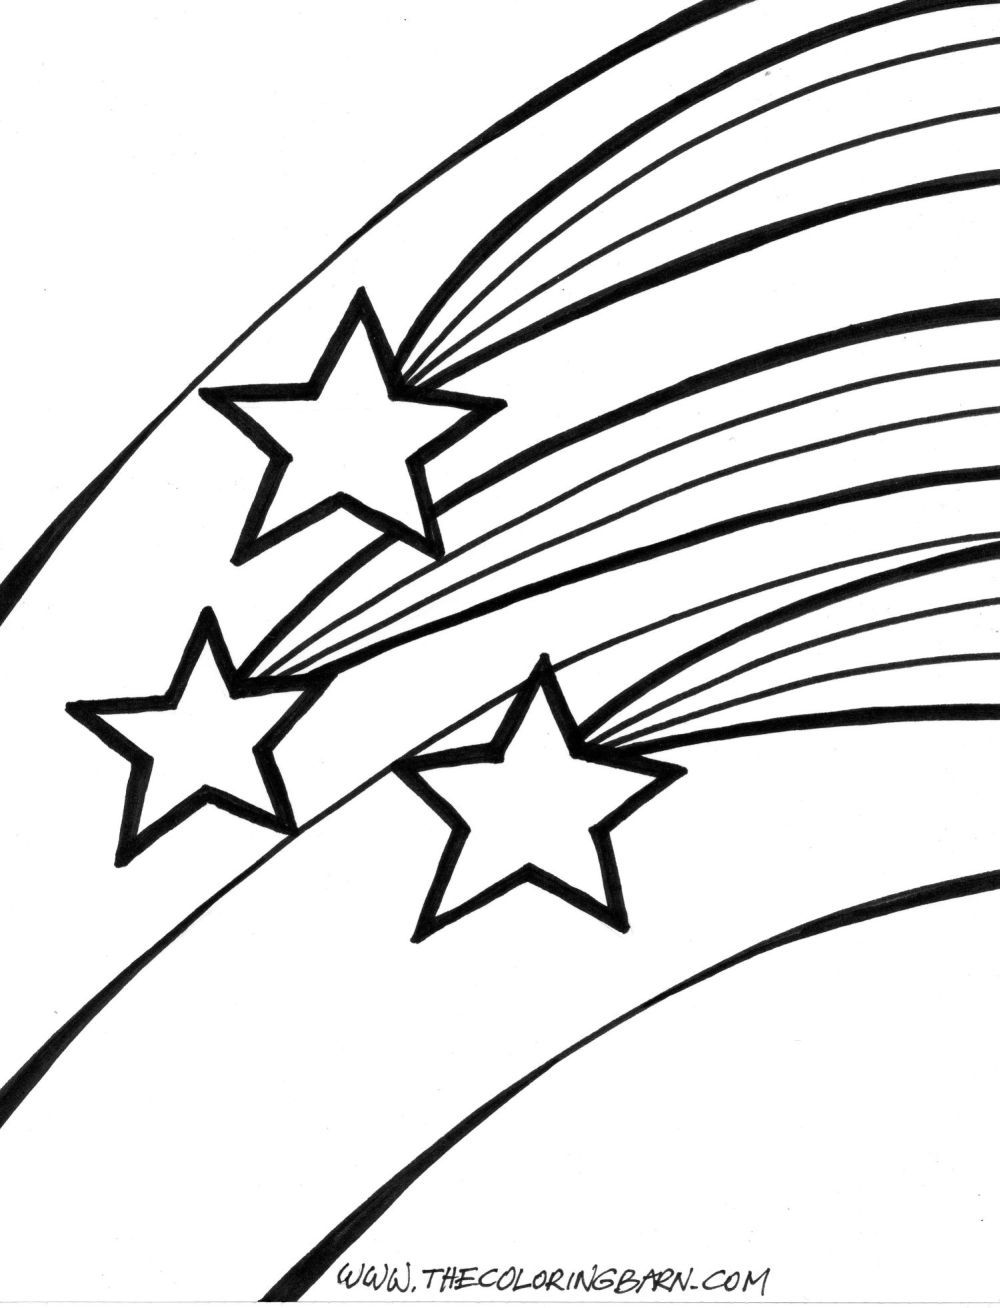 star coloring pages - Free Large Images | Coloring and Lettering ...